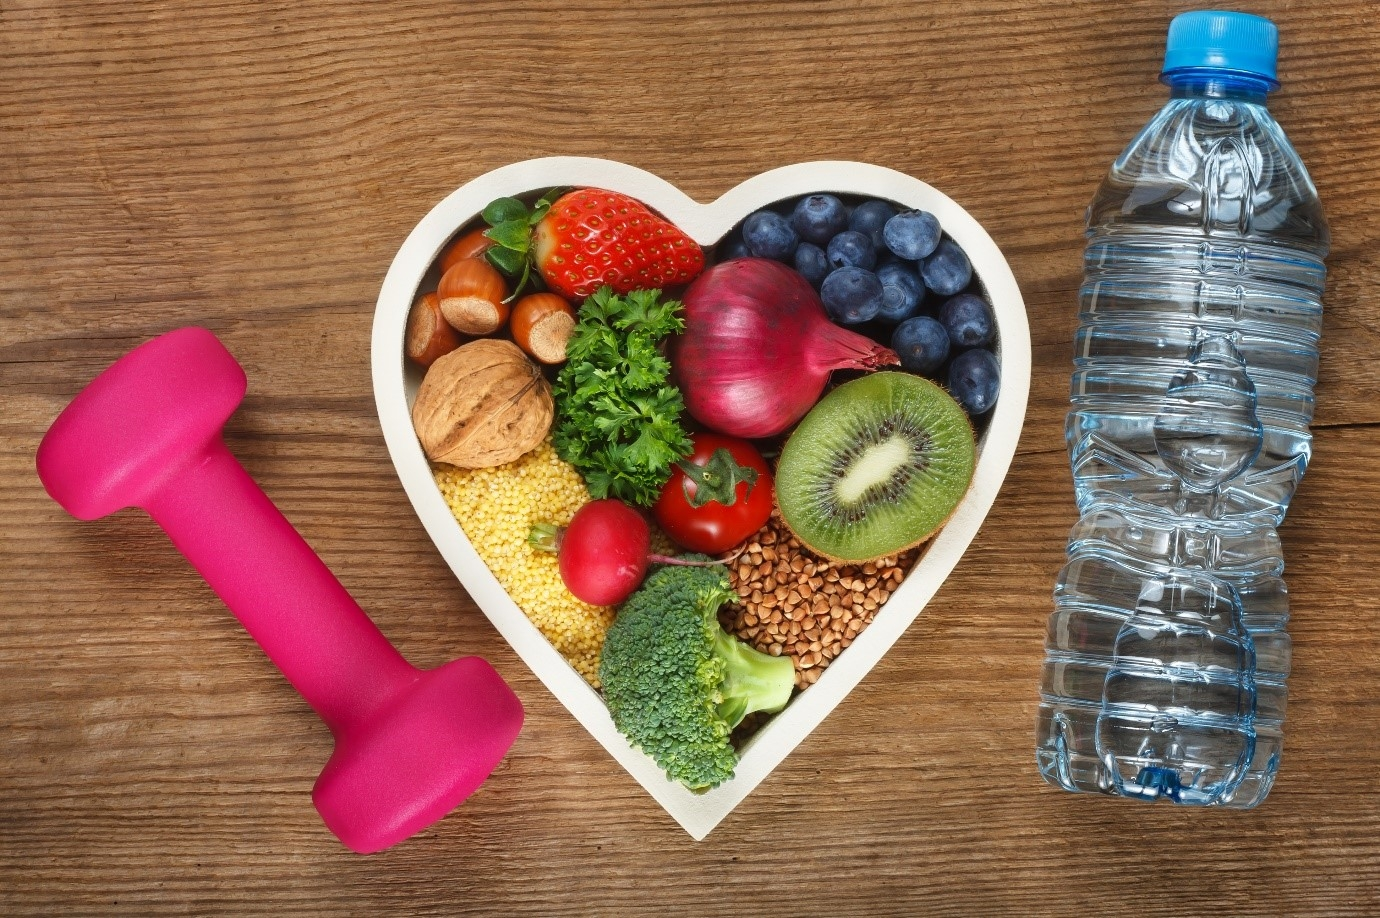 Tips for a heart-healthy lifestyle